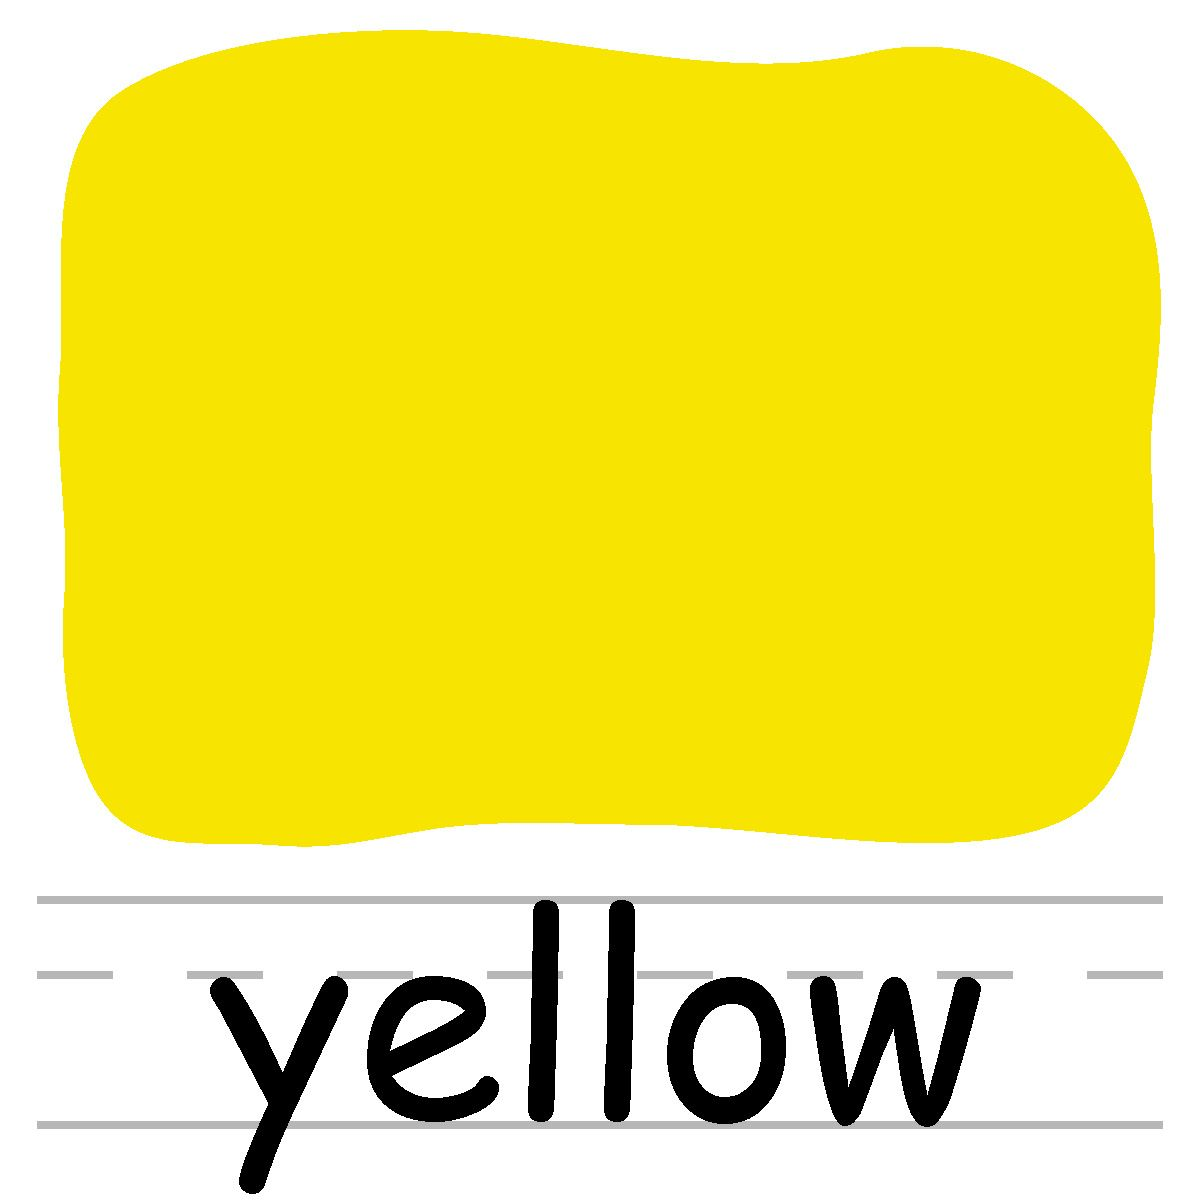 clip art colors apple 05 yellow color abcteach yellow pinterest rh pinterest com yellow crayon clipart Cartoon Purple Crayon